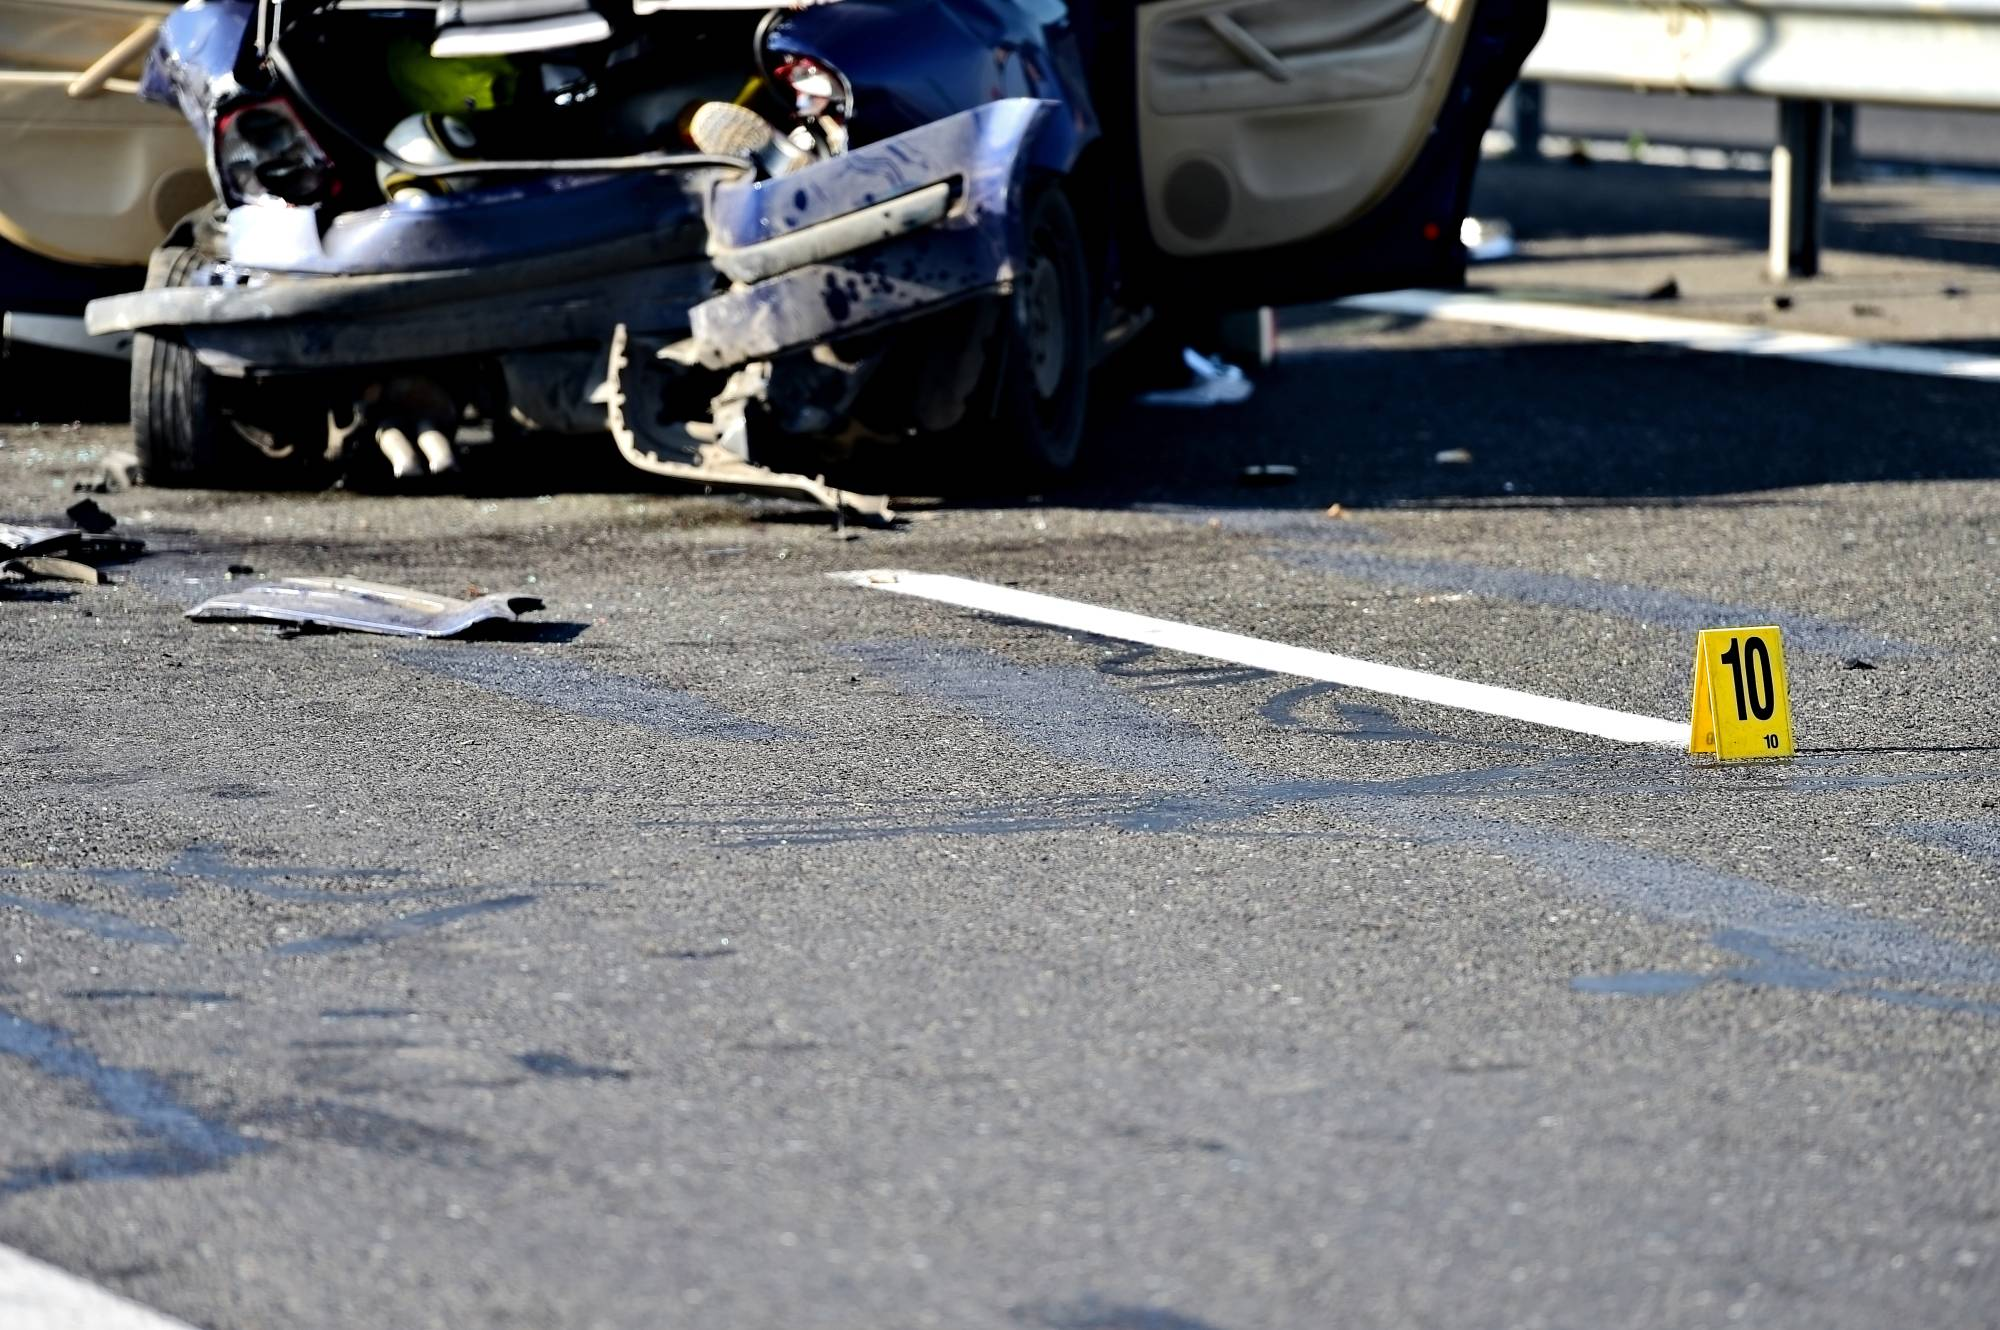 car accidents in japan Passenger car, pick-up trucks and motorcycles involved in traffic accidents fatalities, serious and mild injuries.